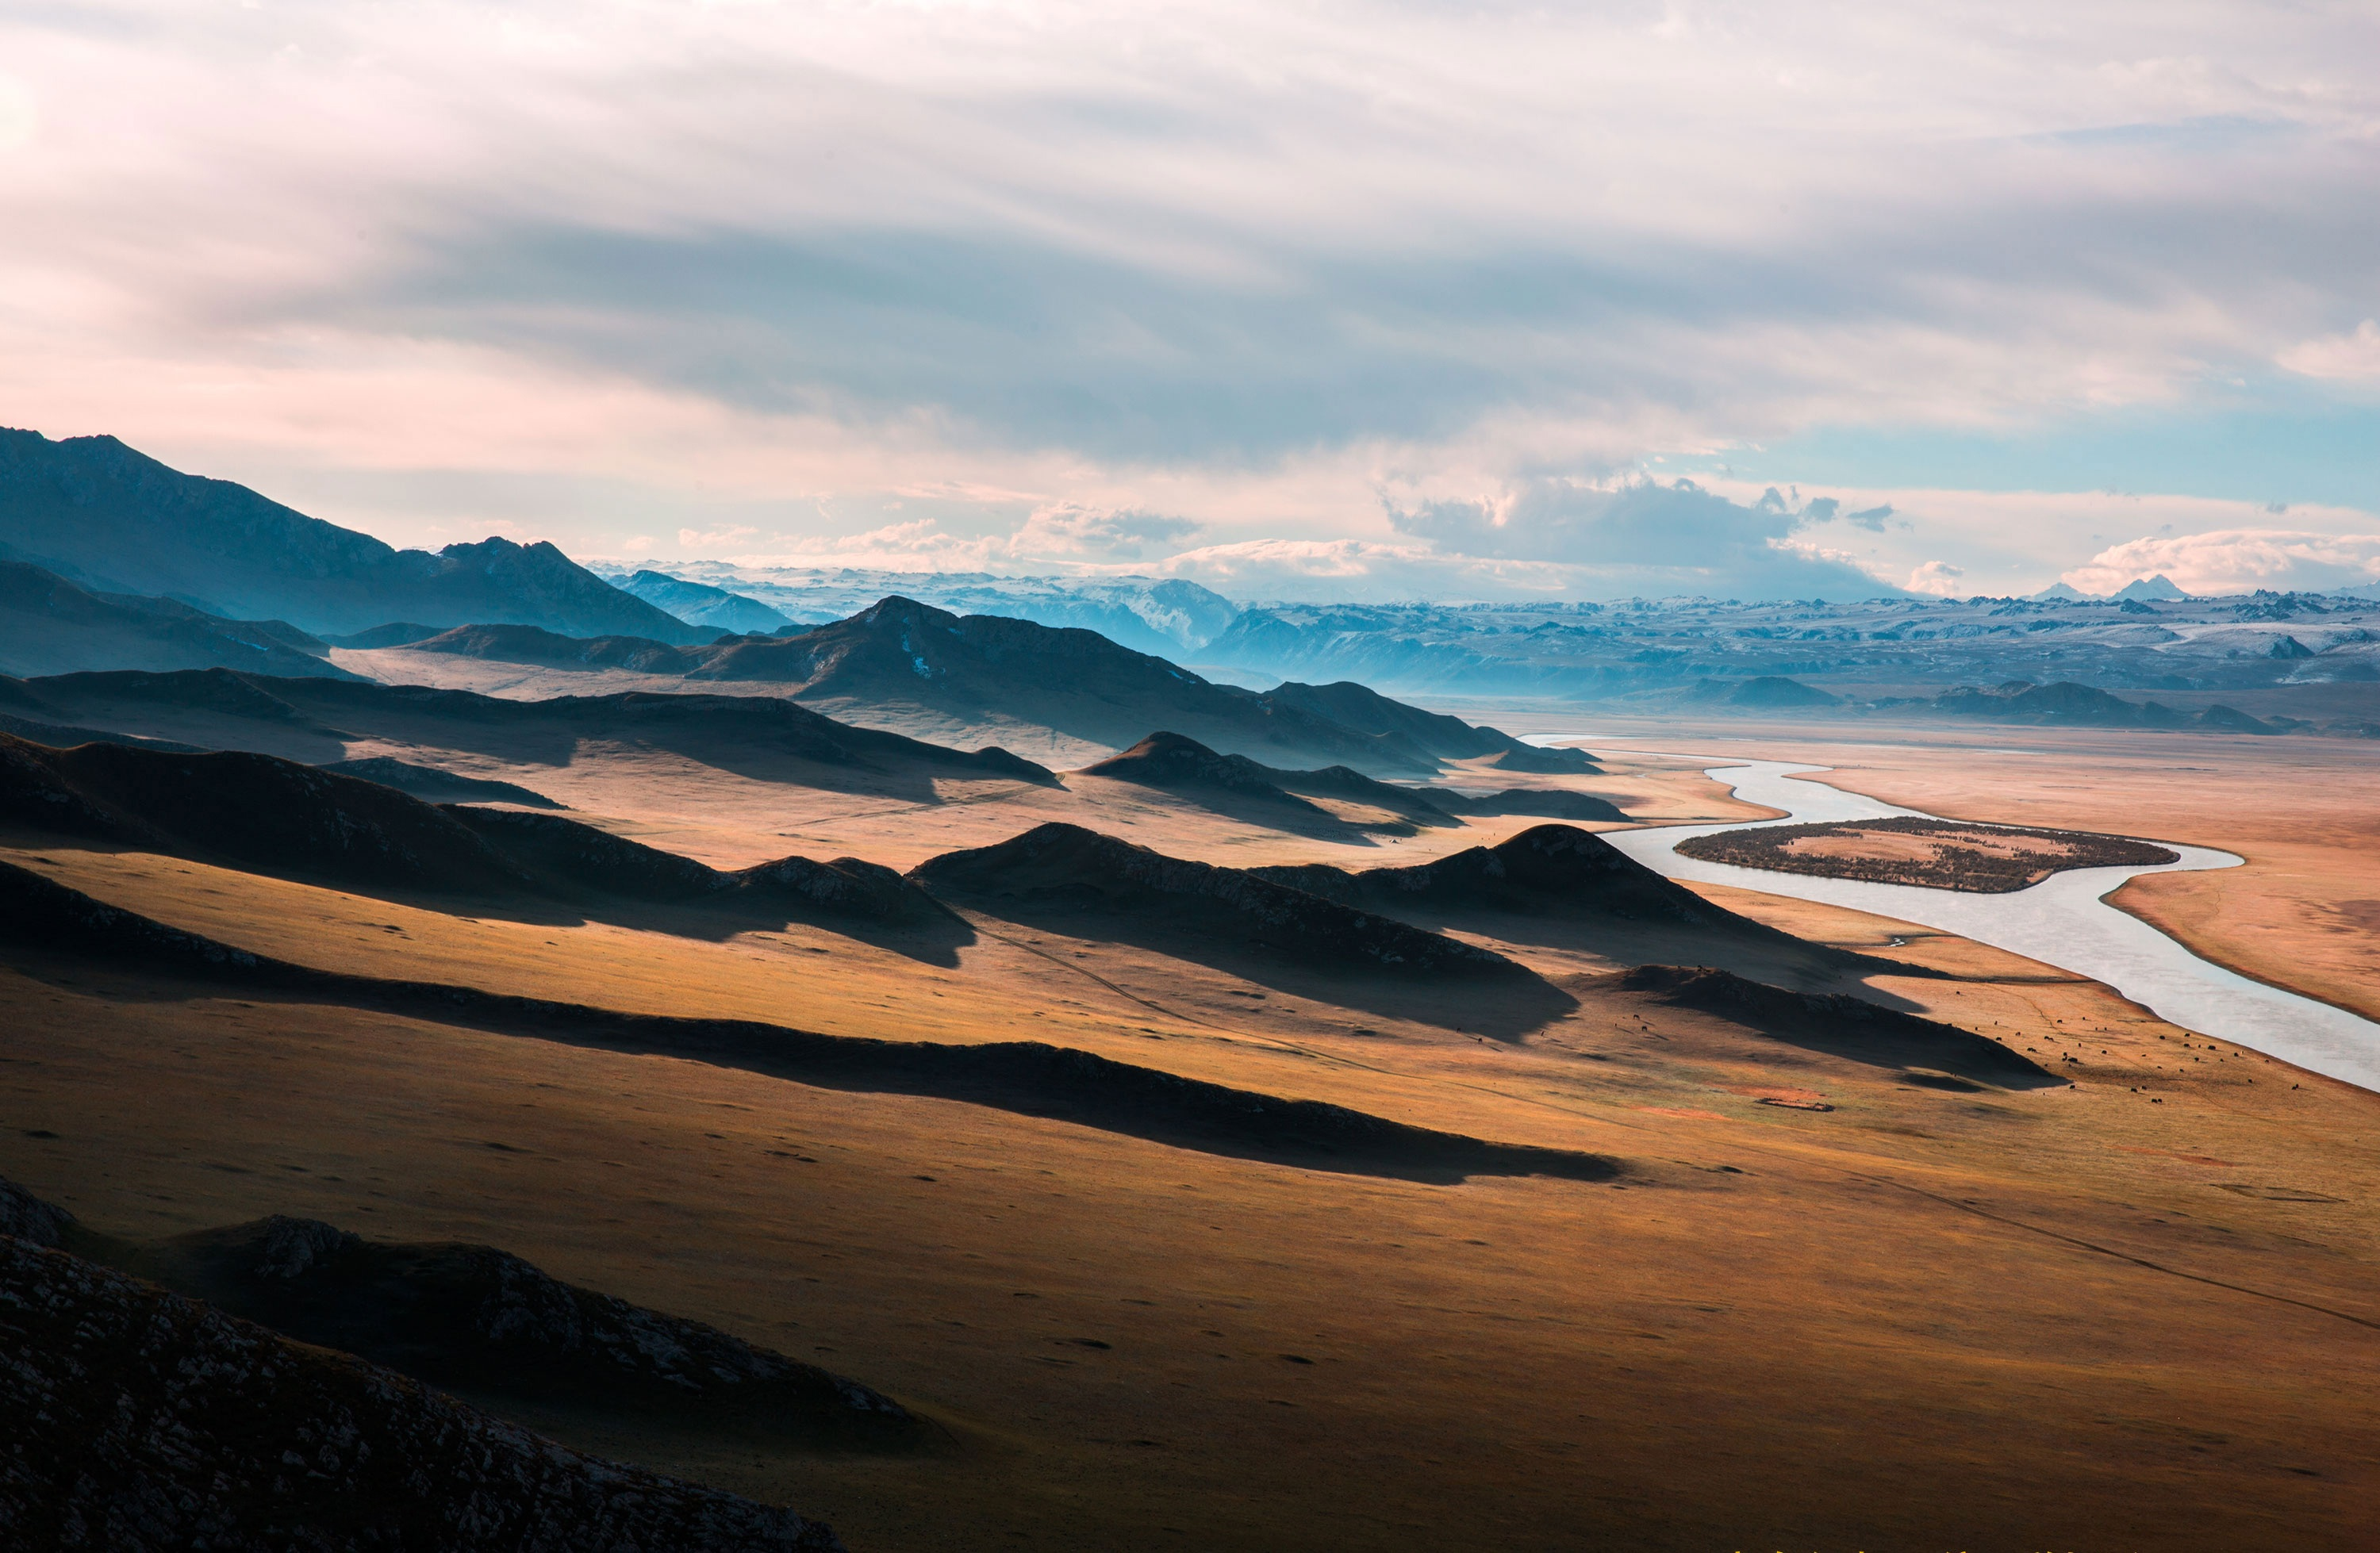 137243 download wallpaper Nature, Prairie, Highway, Mountains, Landscape screensavers and pictures for free